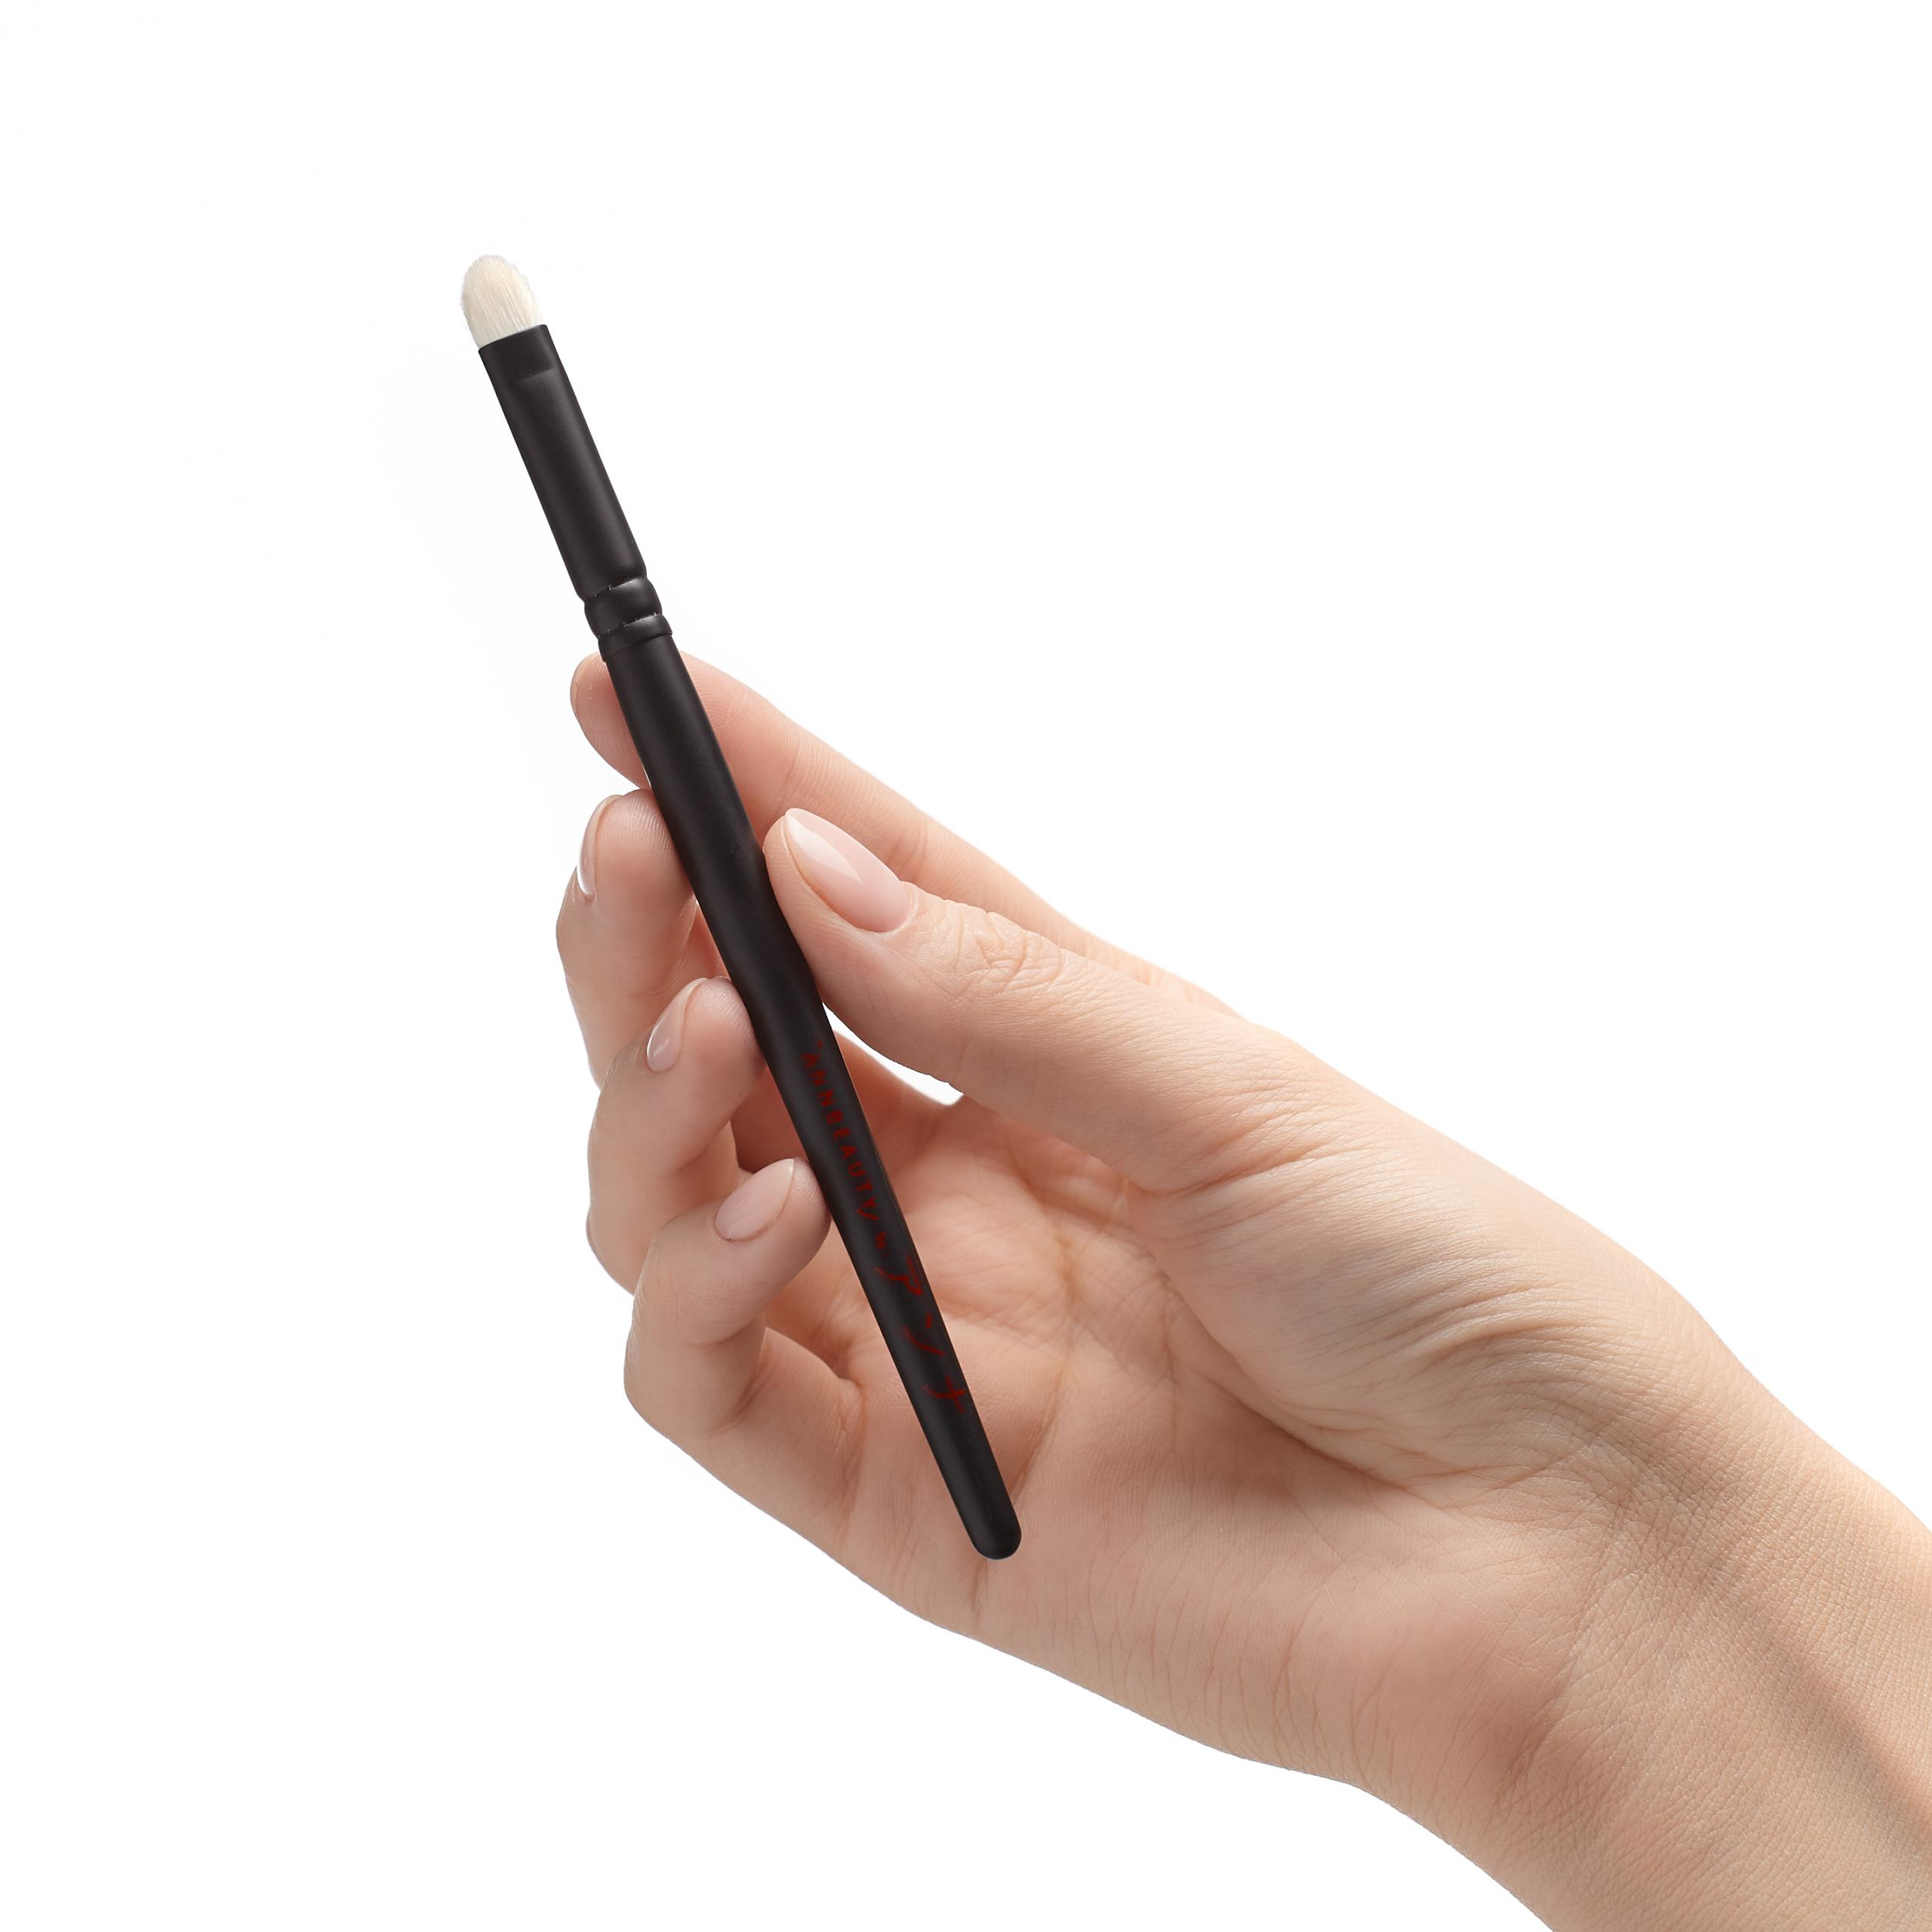 Annbeauty S17 pencil and eyeliner blending brush in hand